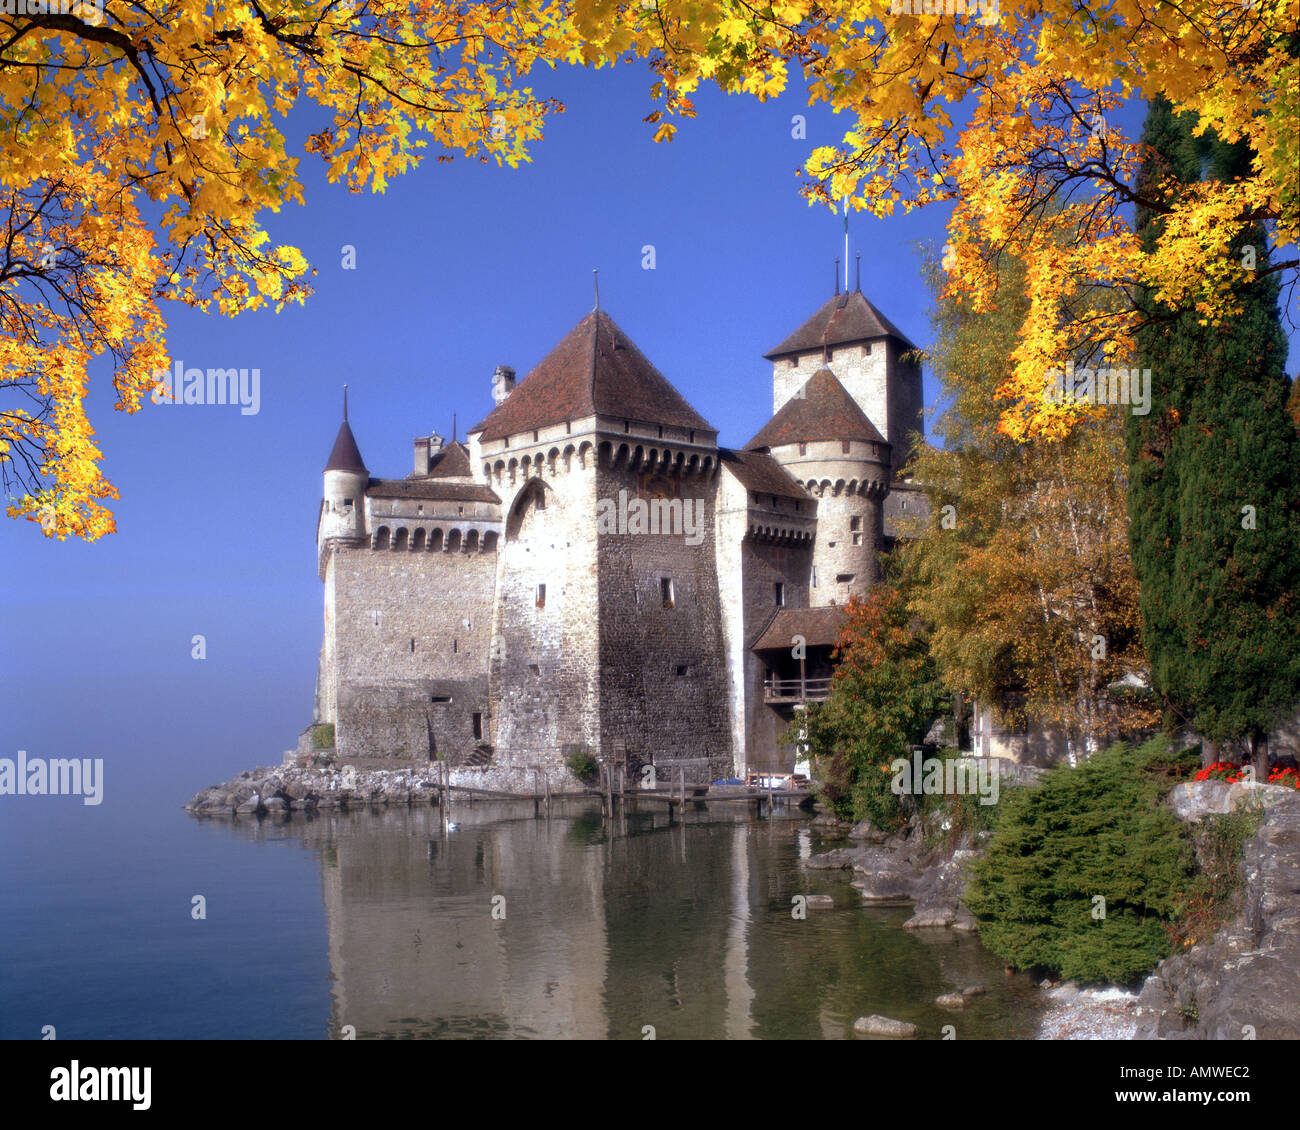 CH - Waadt: Chateau de Chillon am Genfer See Stockbild